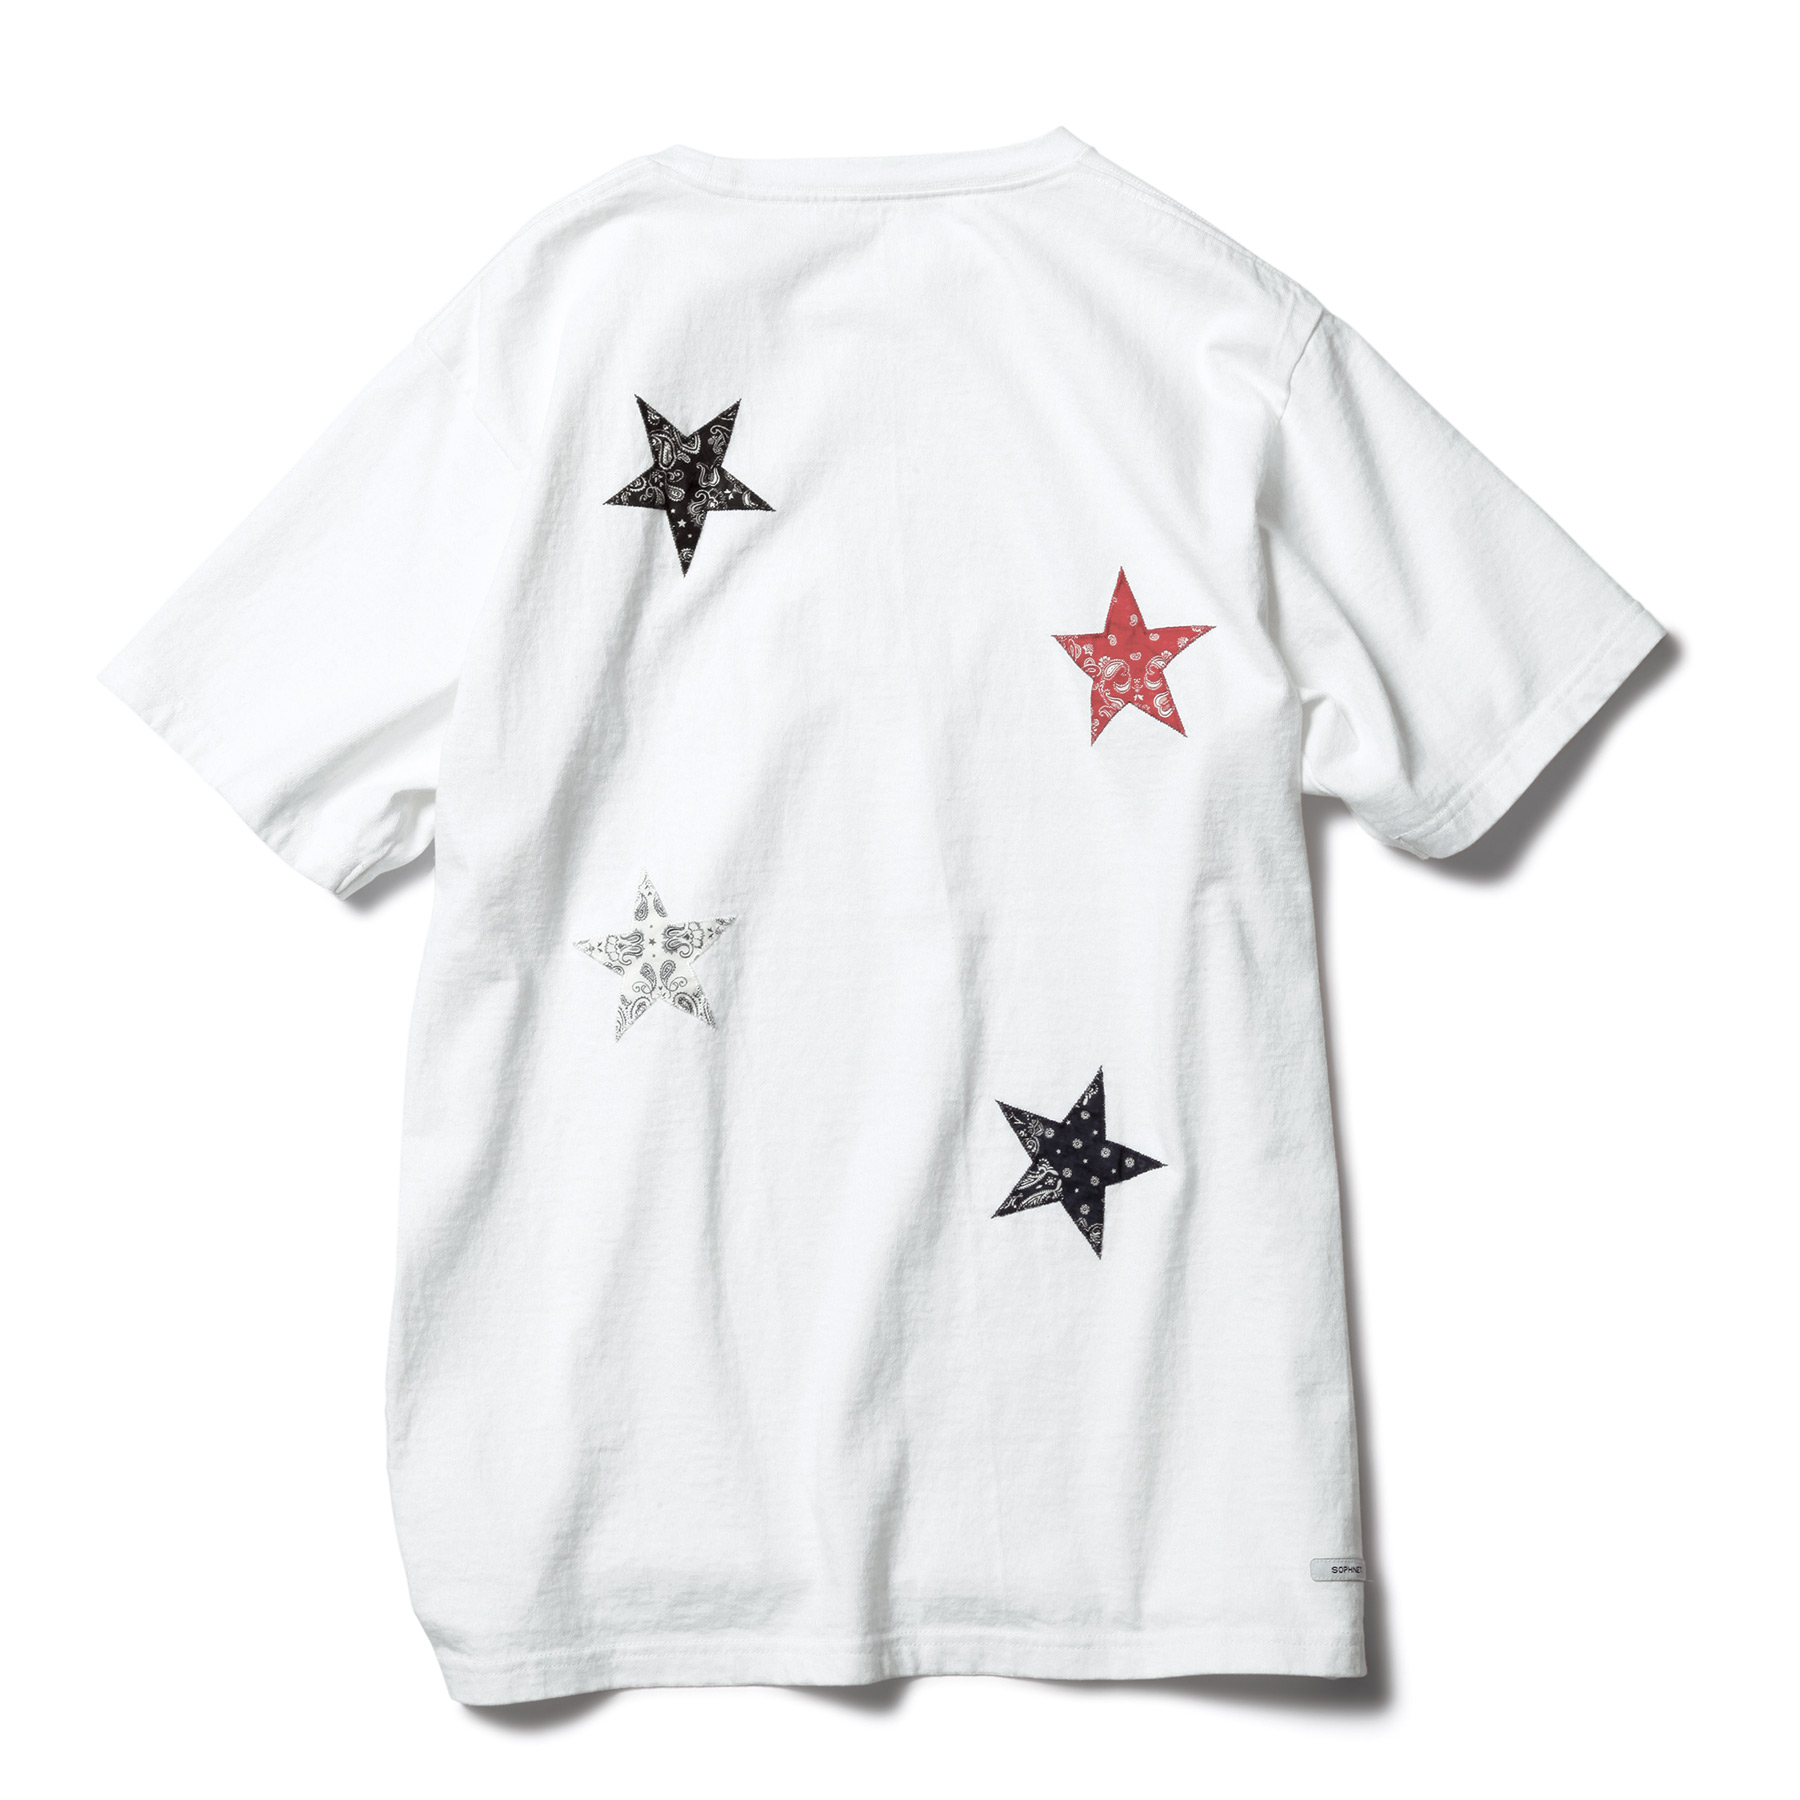 SOPHNET. / BANDANA STAR APPLIQUE TEE -white